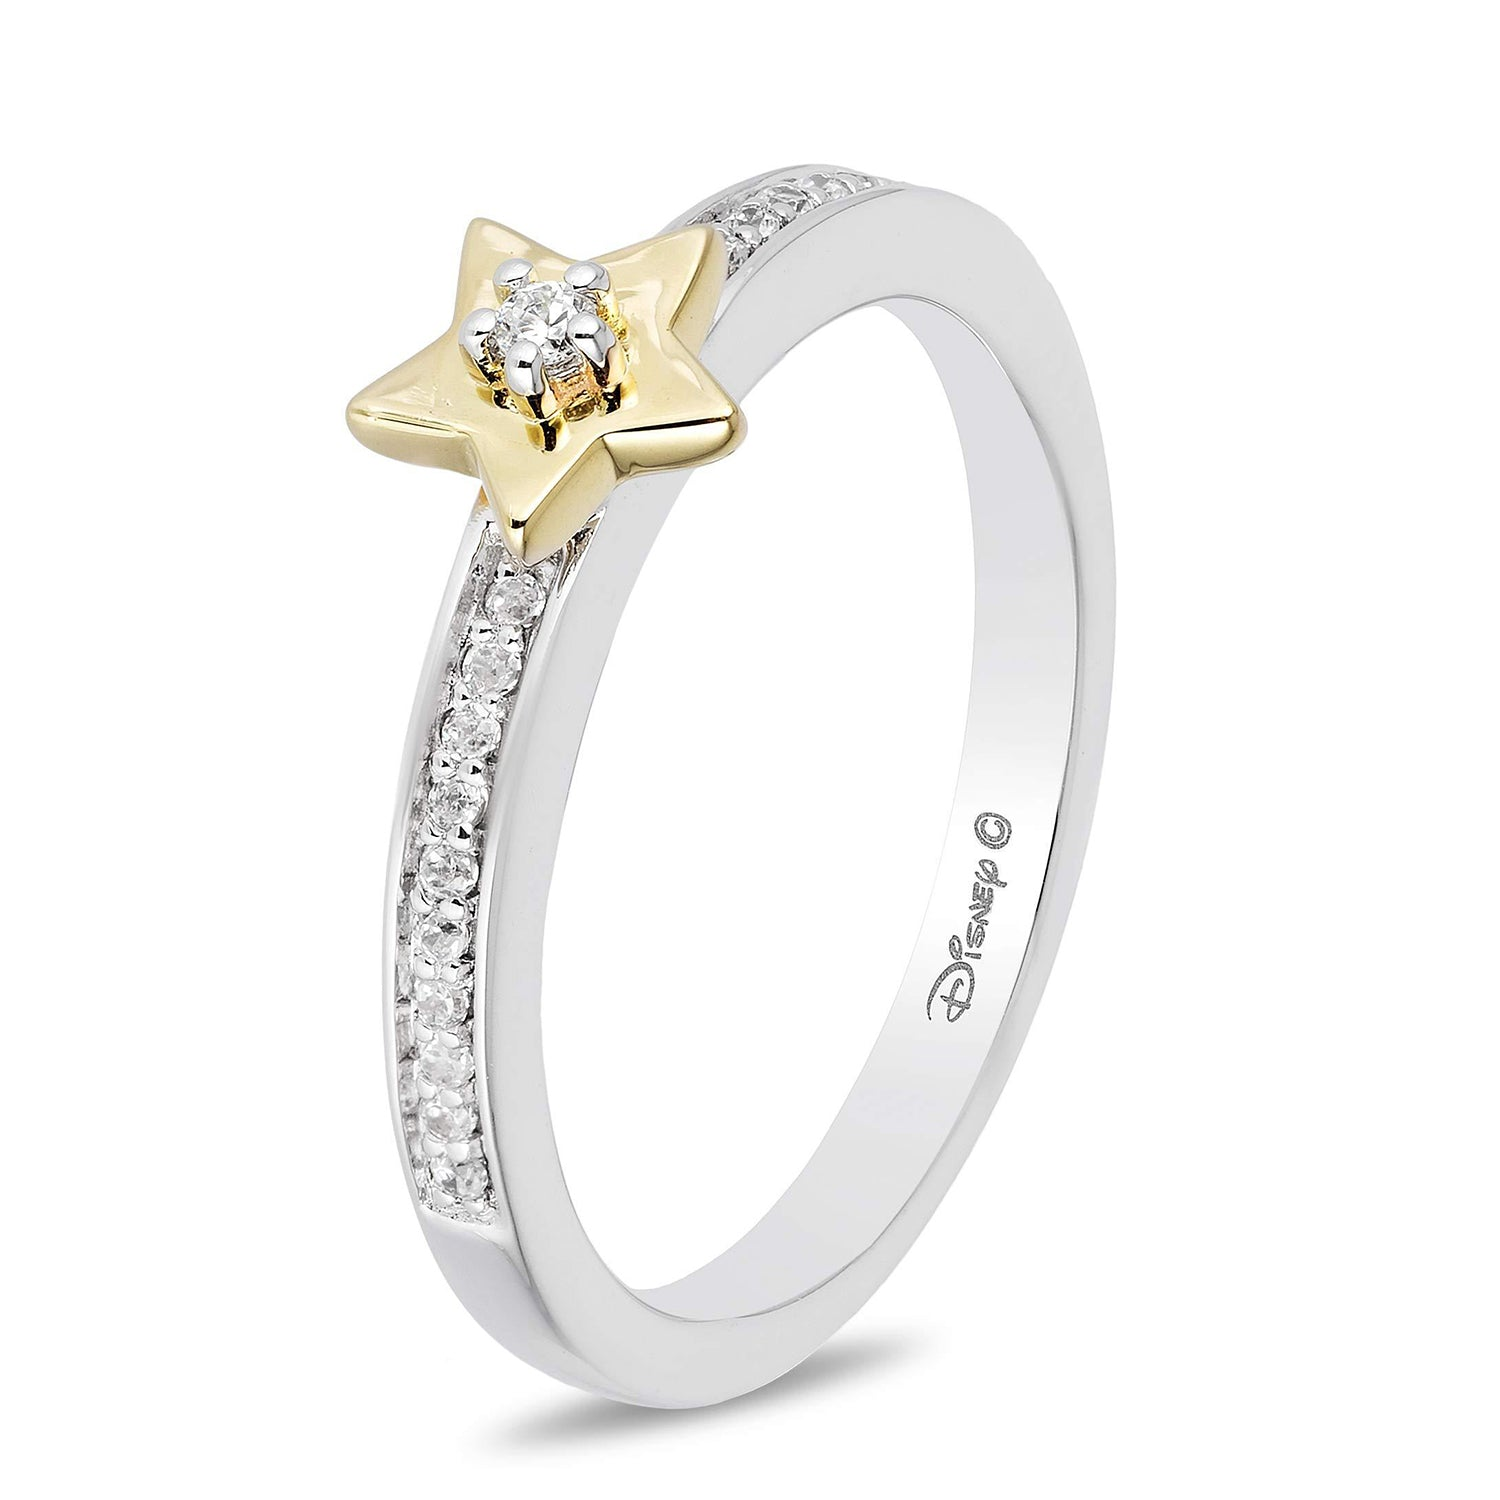 enchanted_disney-tinker-bell_ring-10k_yellow_gold_and_sterling_silver_1/10CTTW_2